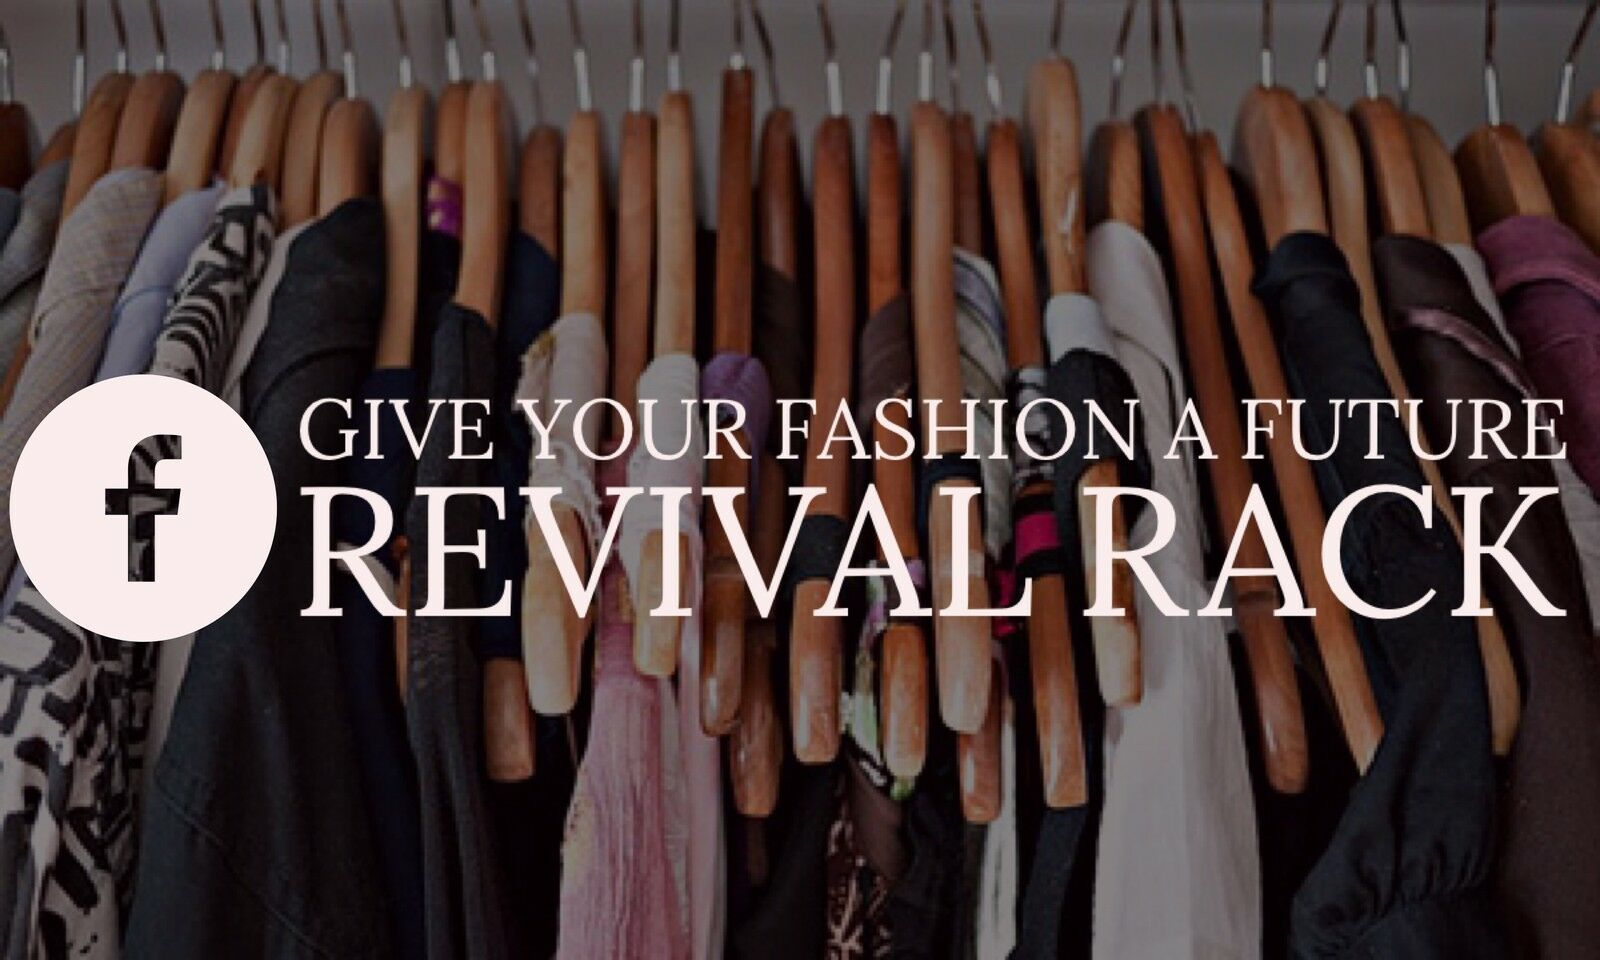 Revival Rack